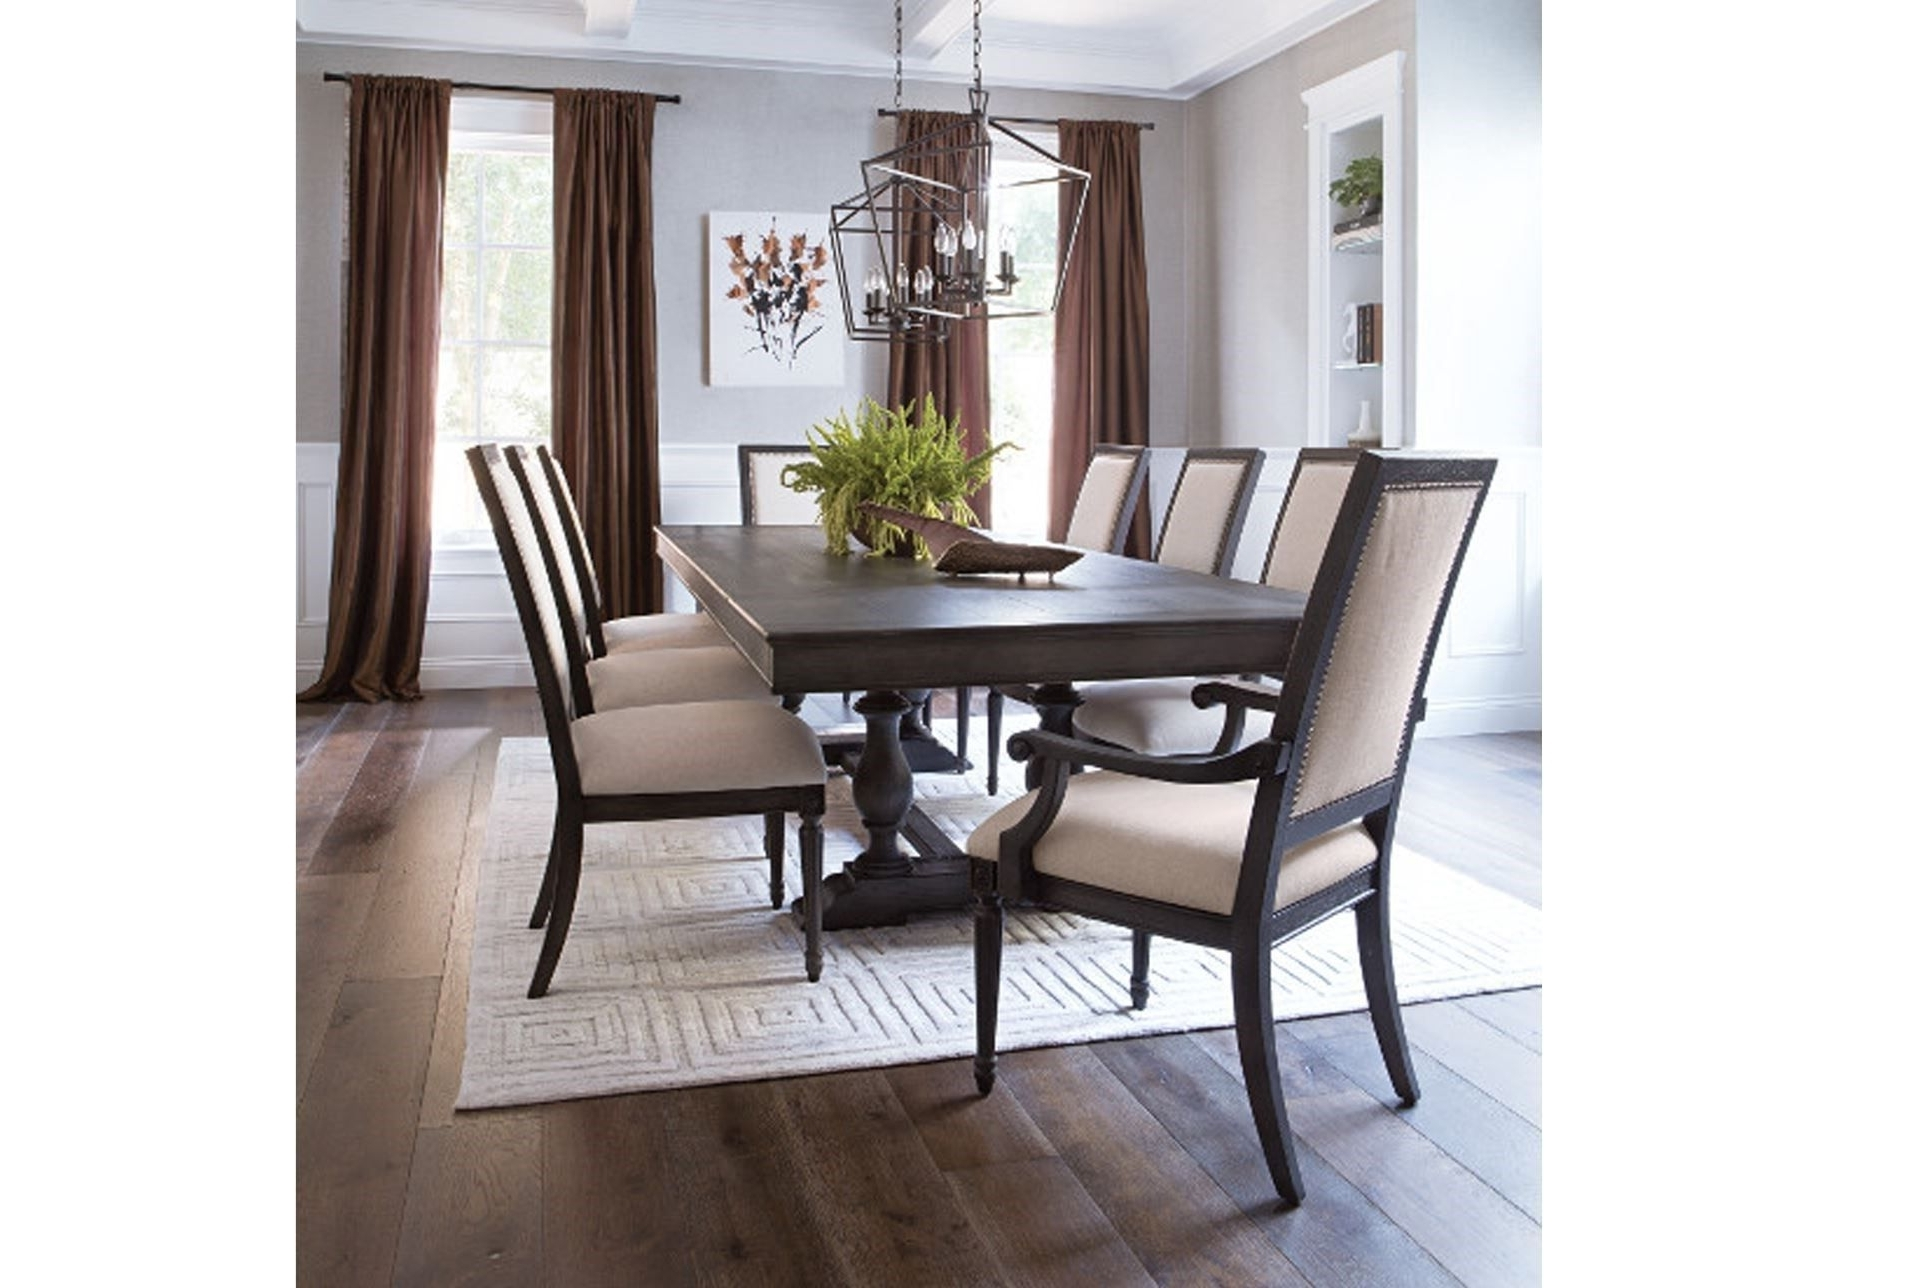 Pinterest Intended For Chapleau Ii 9 Piece Extension Dining Tables With Side Chairs (View 25 of 25)